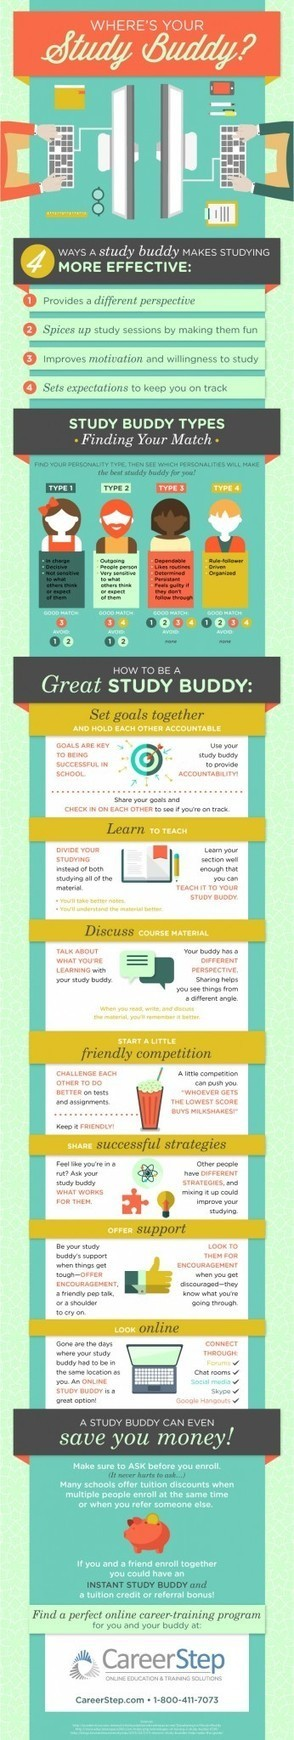 The Study Buddy Infographic | Leadership, Innovation, and Creativity | Scoop.it